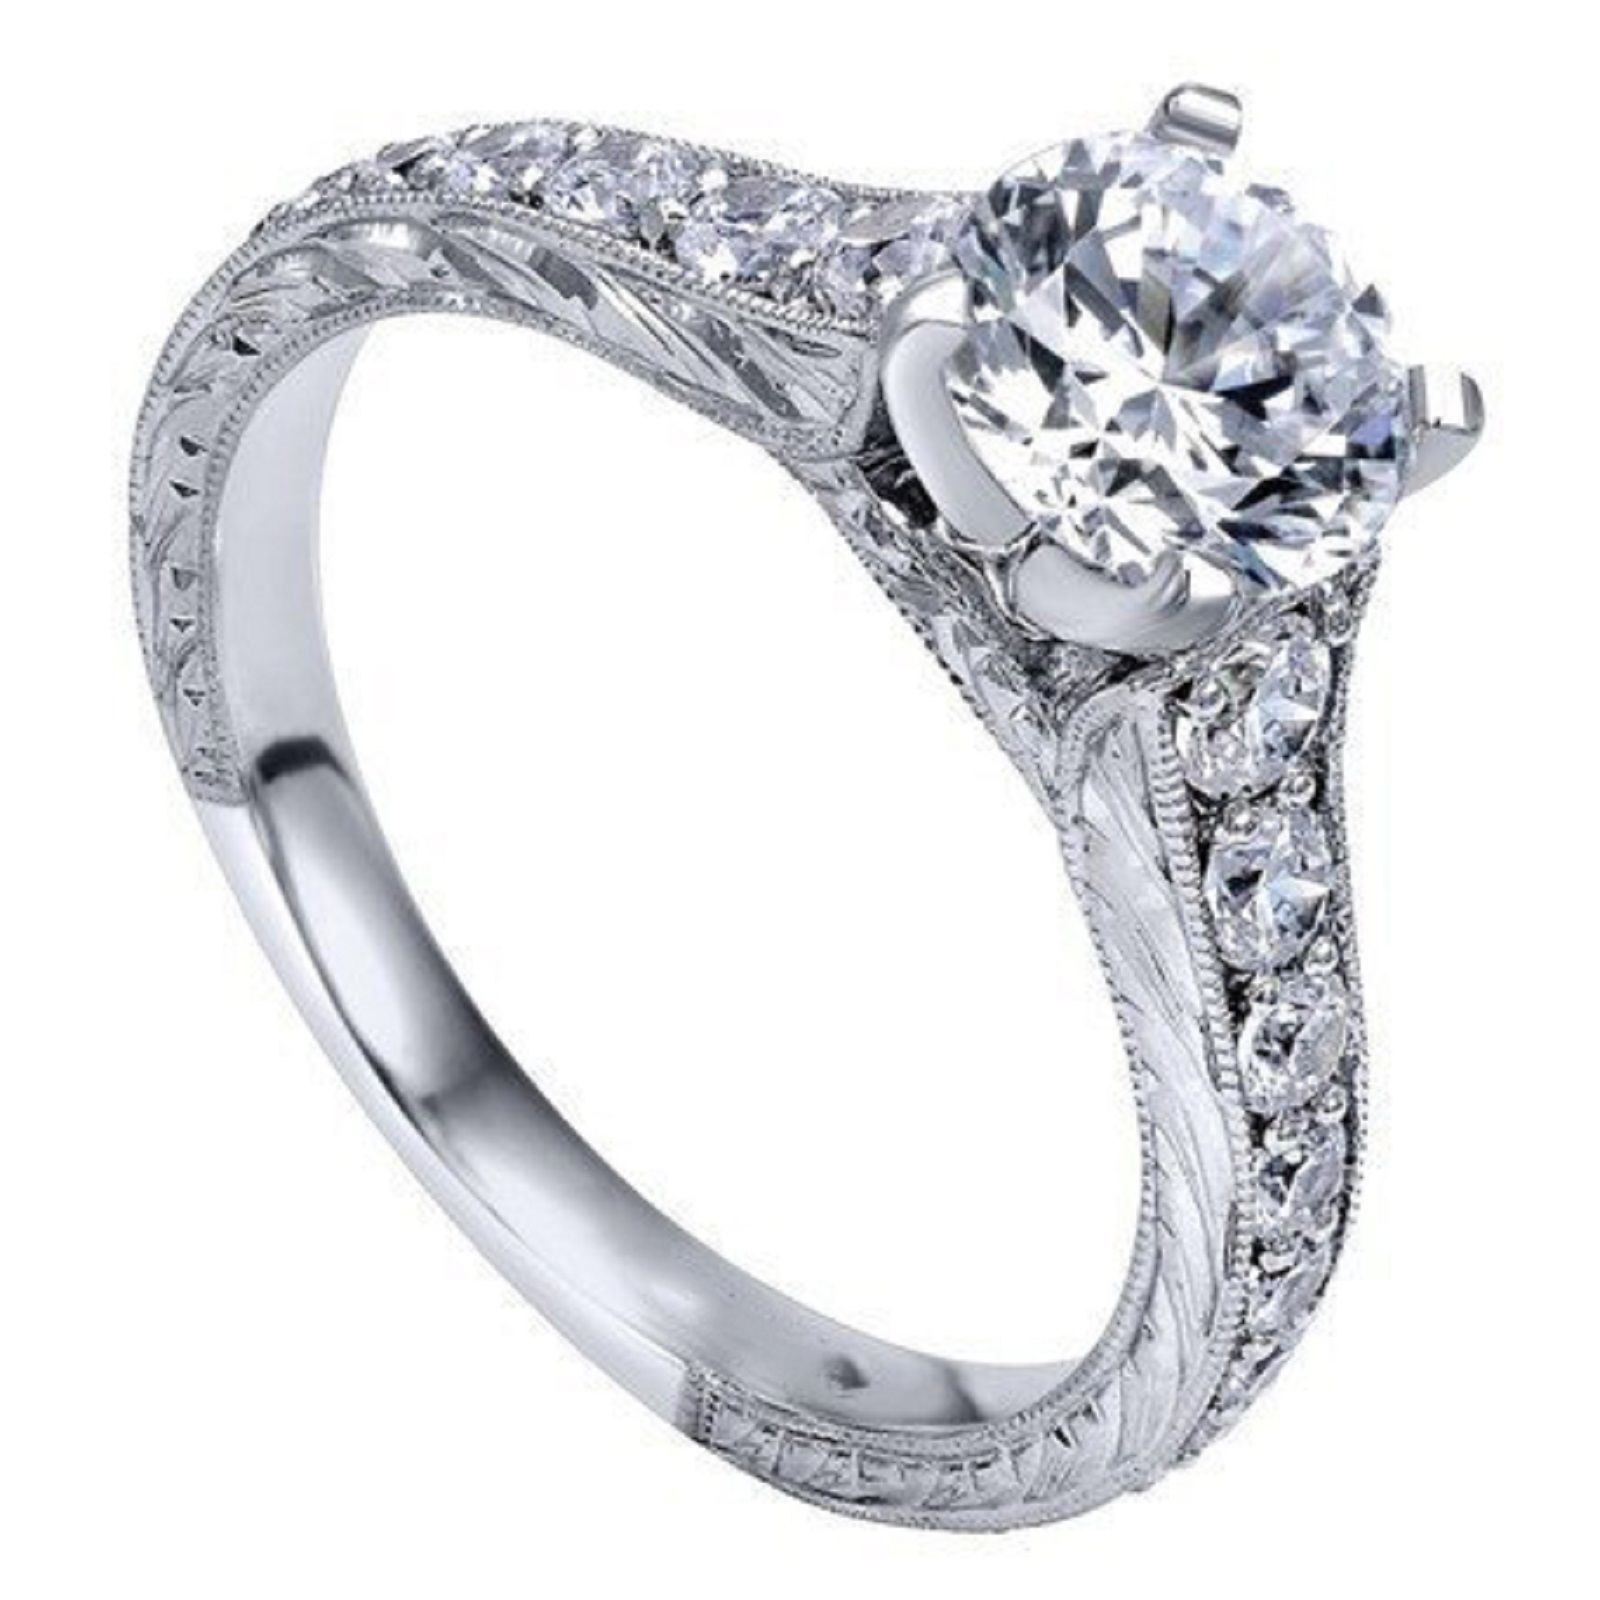 1.87Ct Brilliant Cut Moissanite Engagement Wedding Ring Sets 925 Sterling Silver